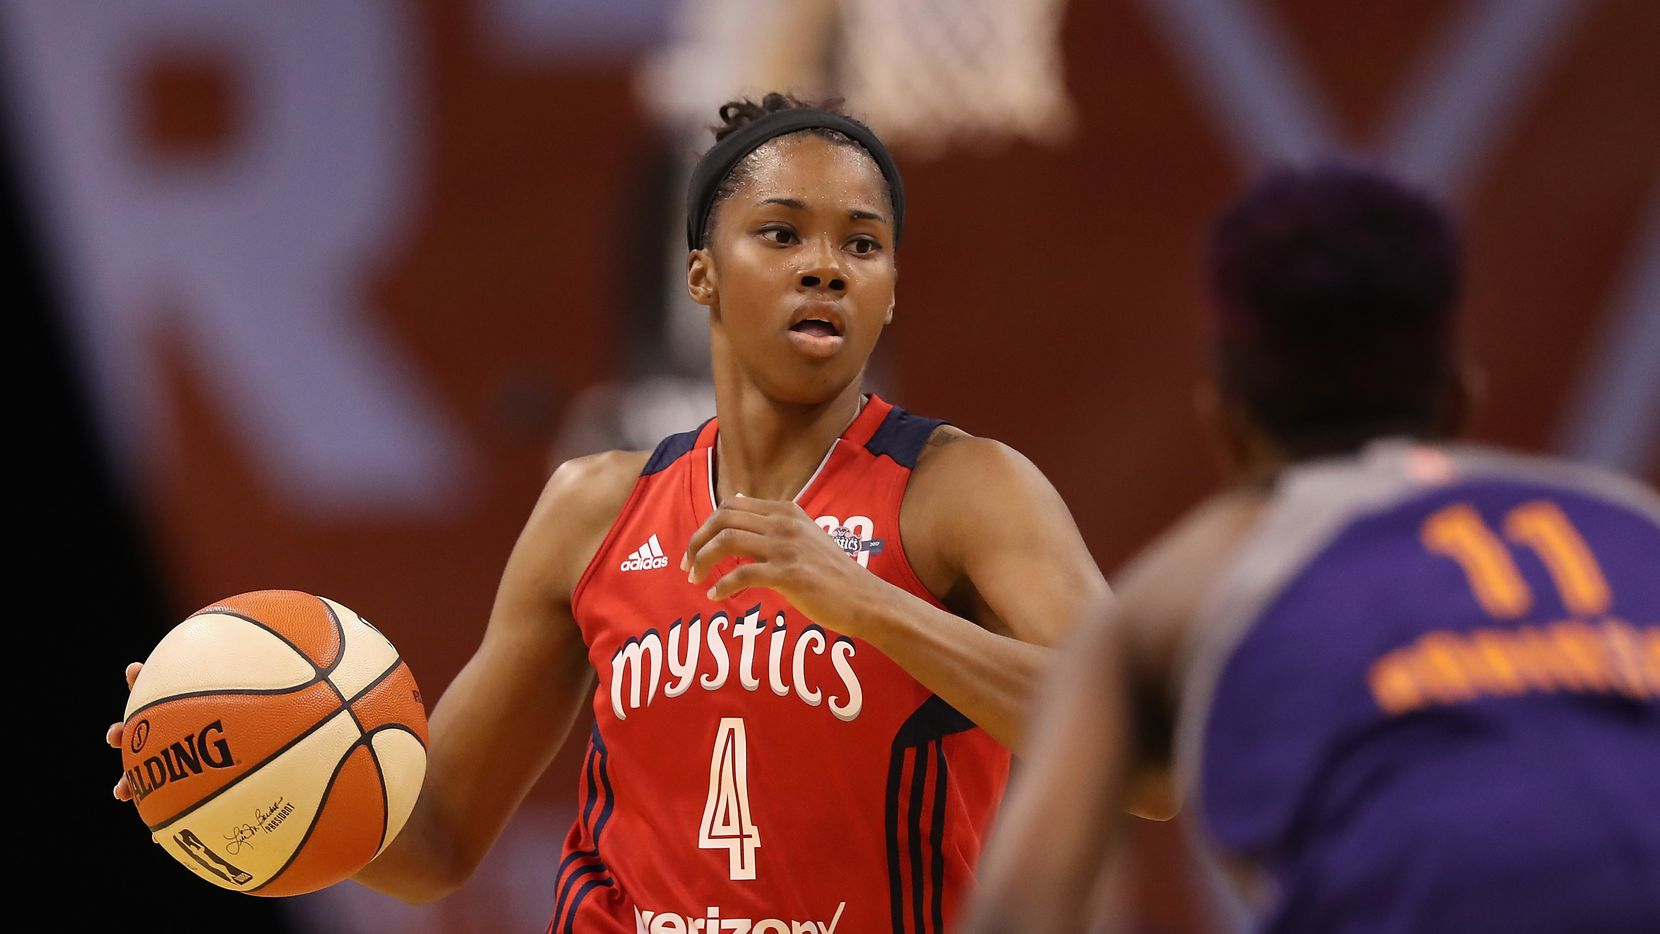 PHOENIX, AZ - JULY 05:  Tayler Hill #4 of the Washington Mystics handles the ball during the WNBA game against the Phoenix Mercury at Talking Stick Resort Arena on July 5, 2017 in Phoenix, Arizona.  NOTE TO USER: User expressly acknowledges and agrees that, by downloading and or using this photograph, User is consenting to the terms and conditions of the Getty Images License Agreement.  (Photo by Christian Petersen/Getty Images)